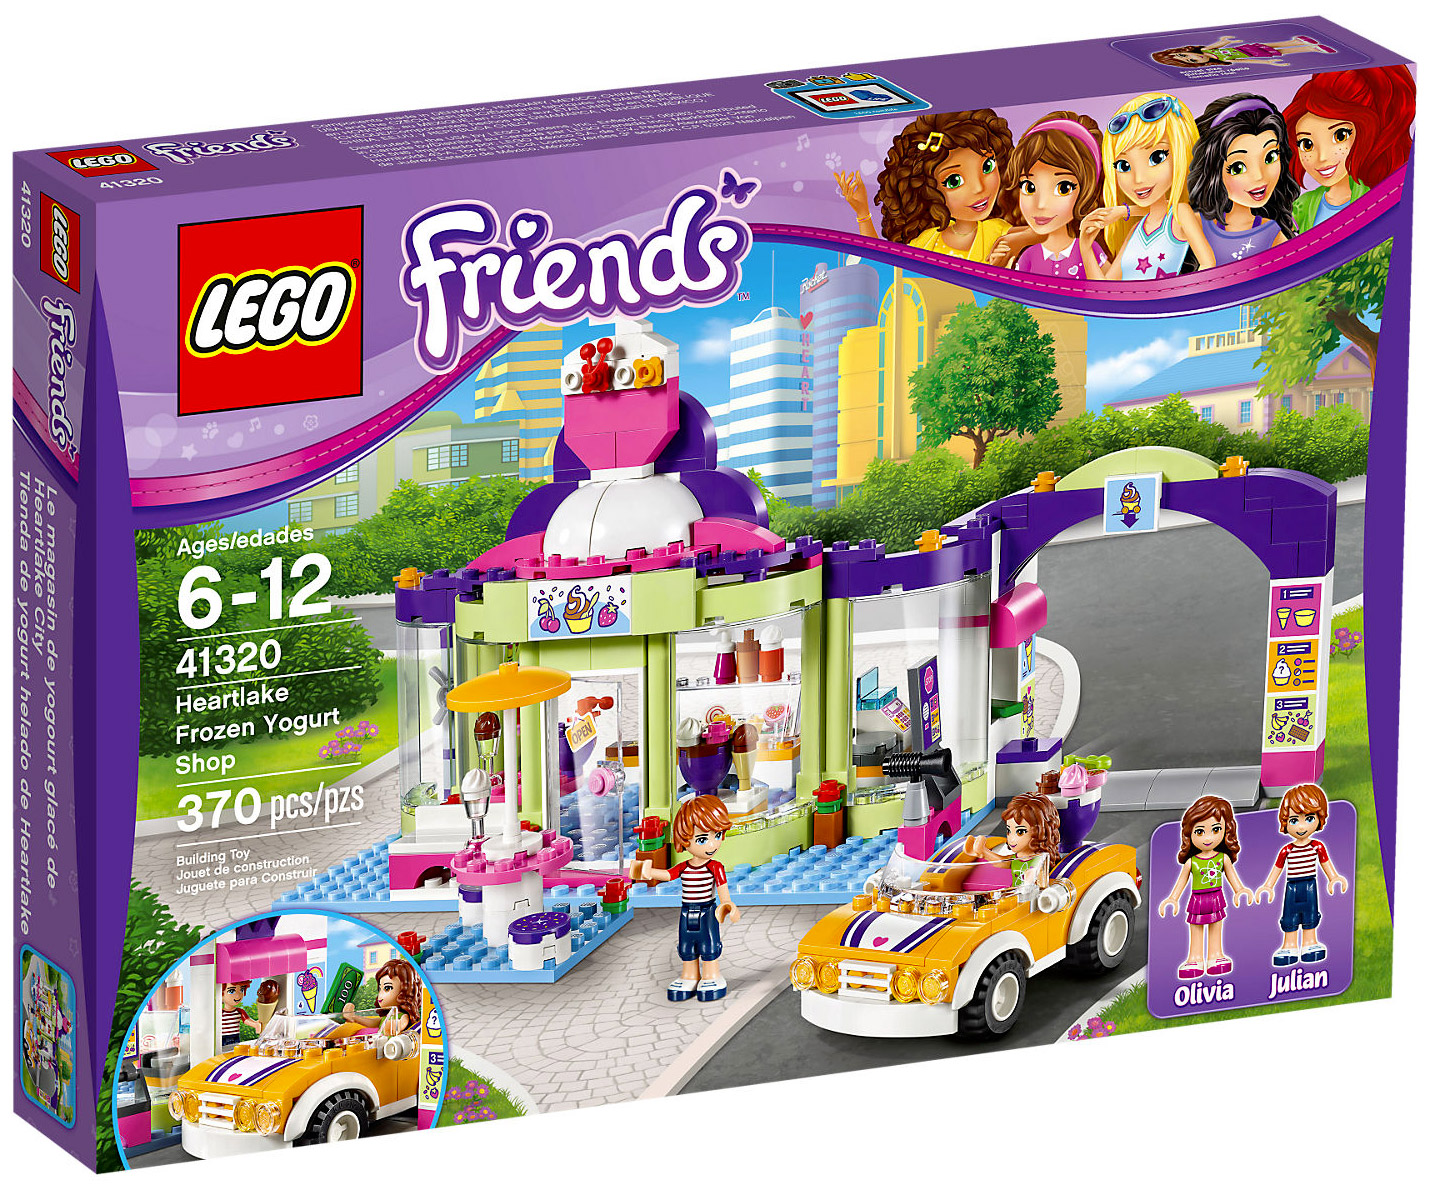 lego friends 41320 pas cher le magasin de yaourt glac. Black Bedroom Furniture Sets. Home Design Ideas